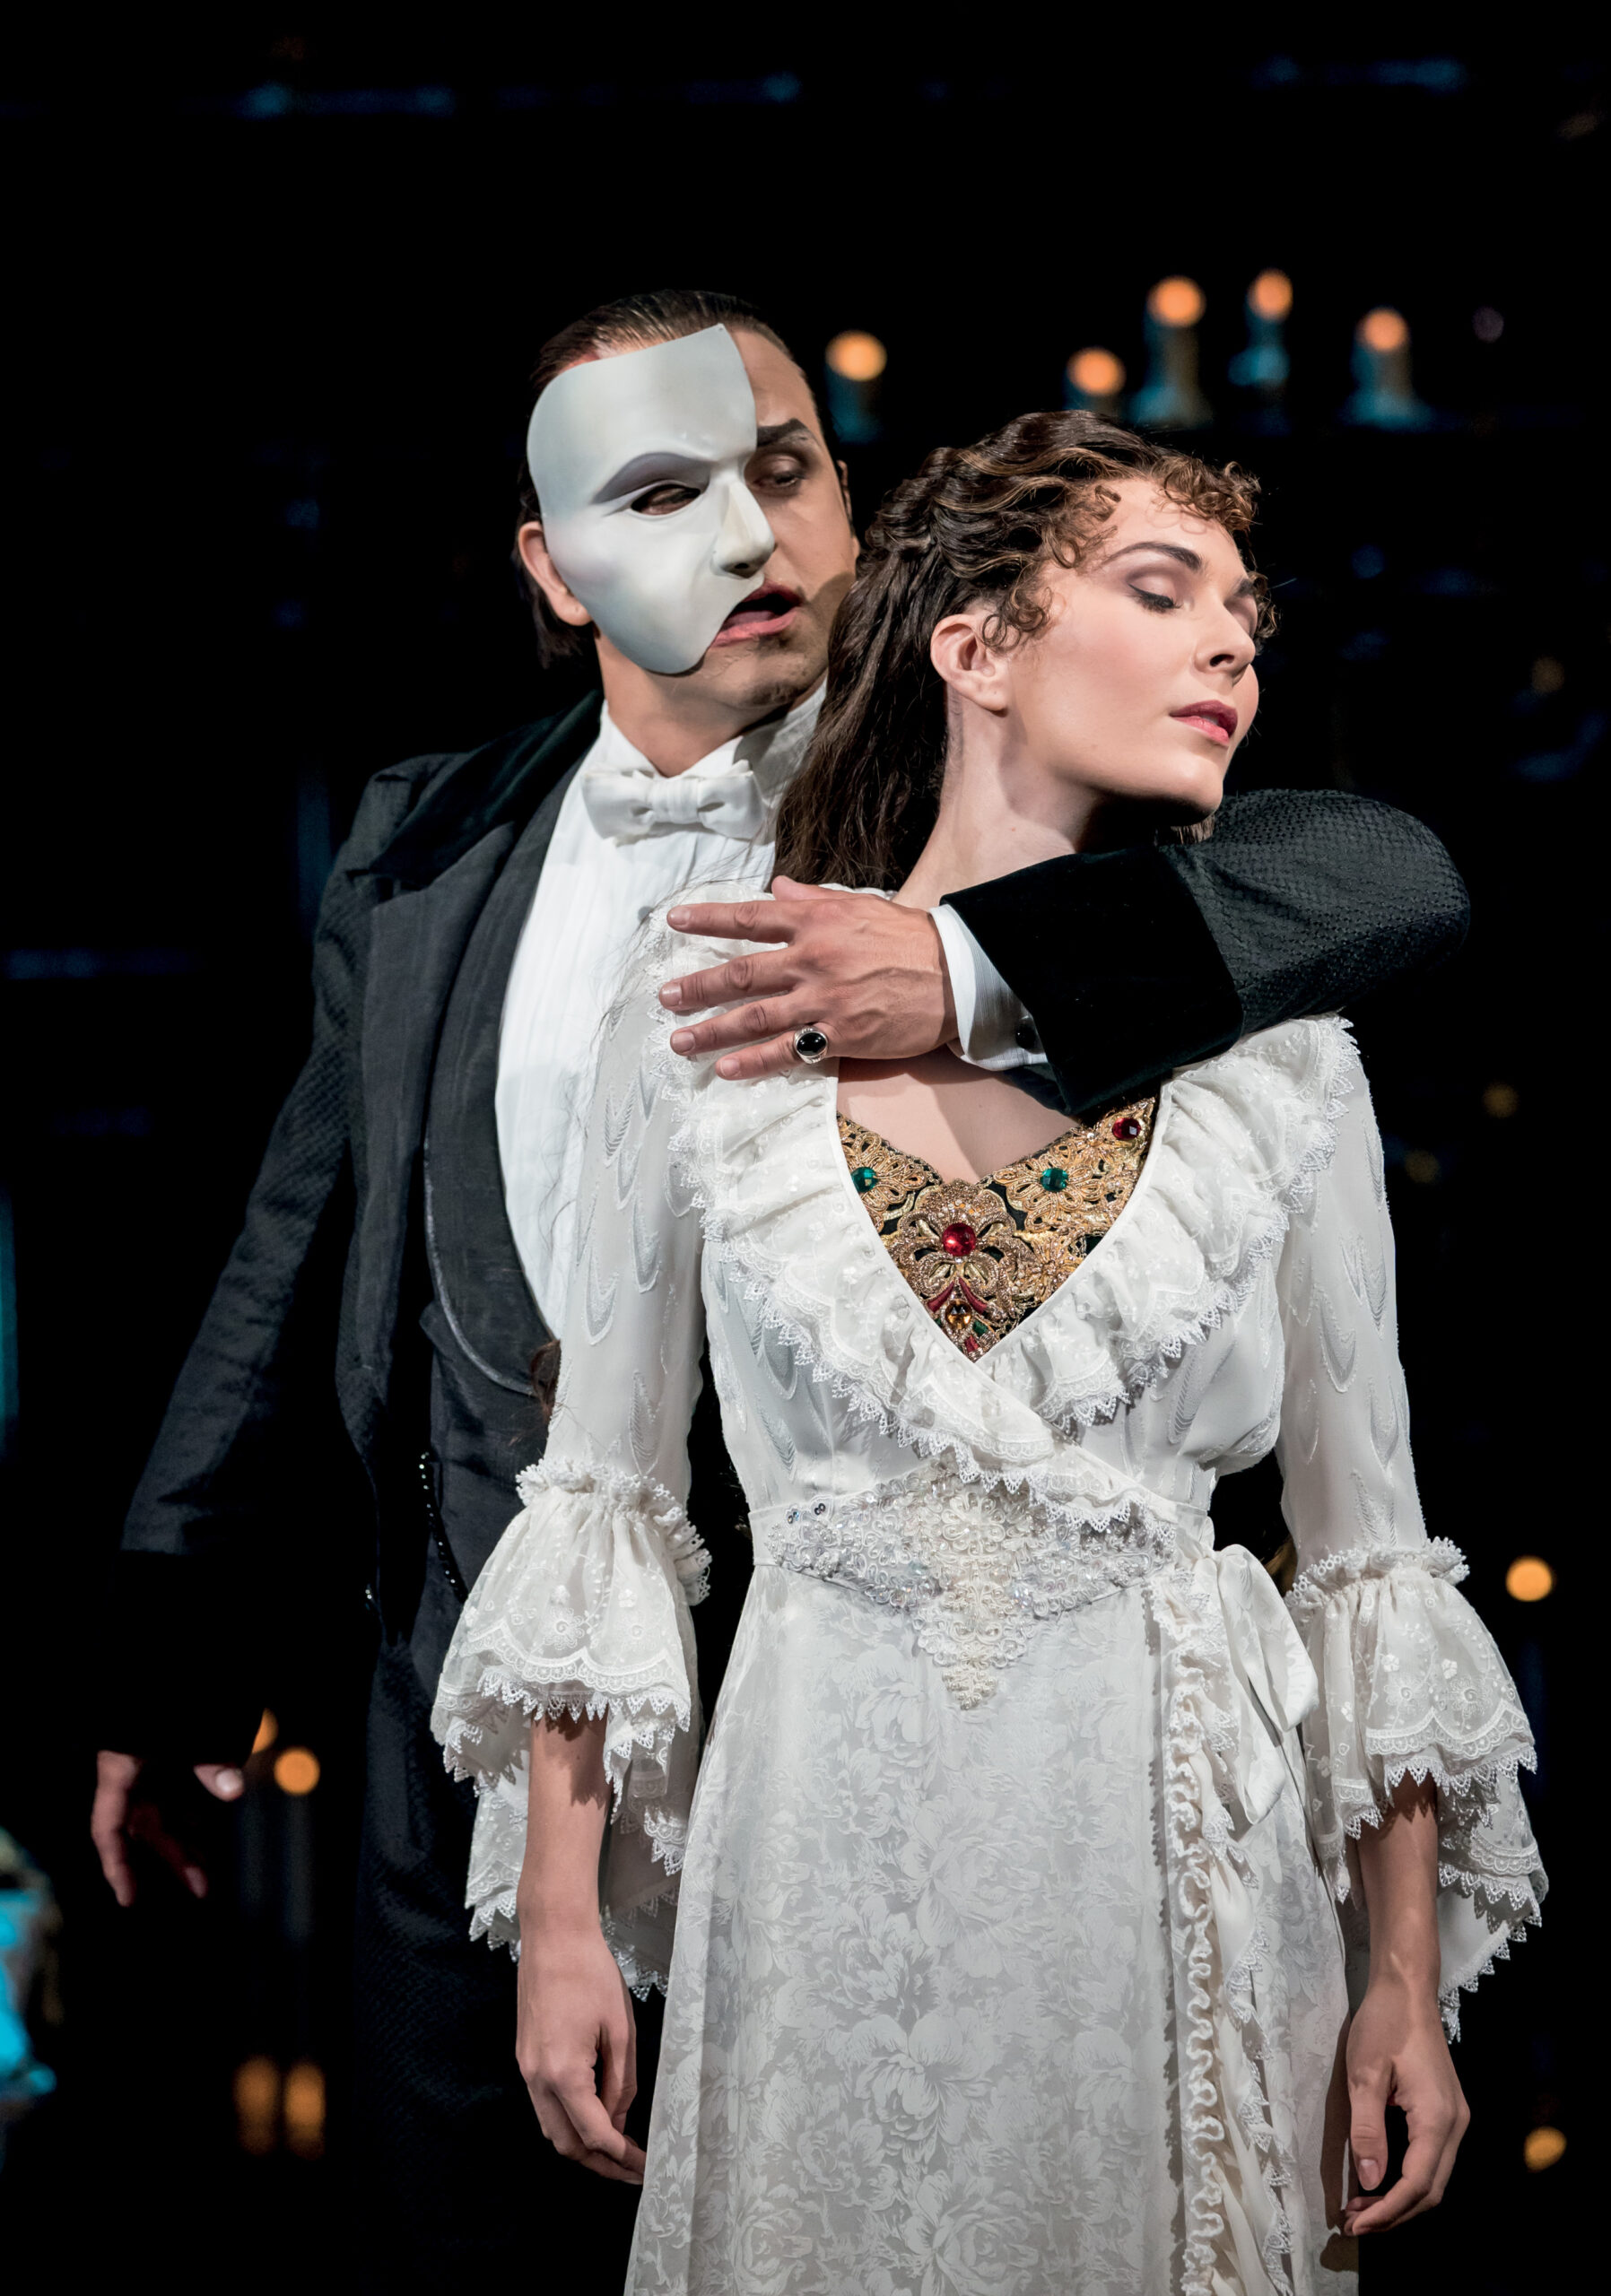 The Top 10 Bestselling Stage Musicals